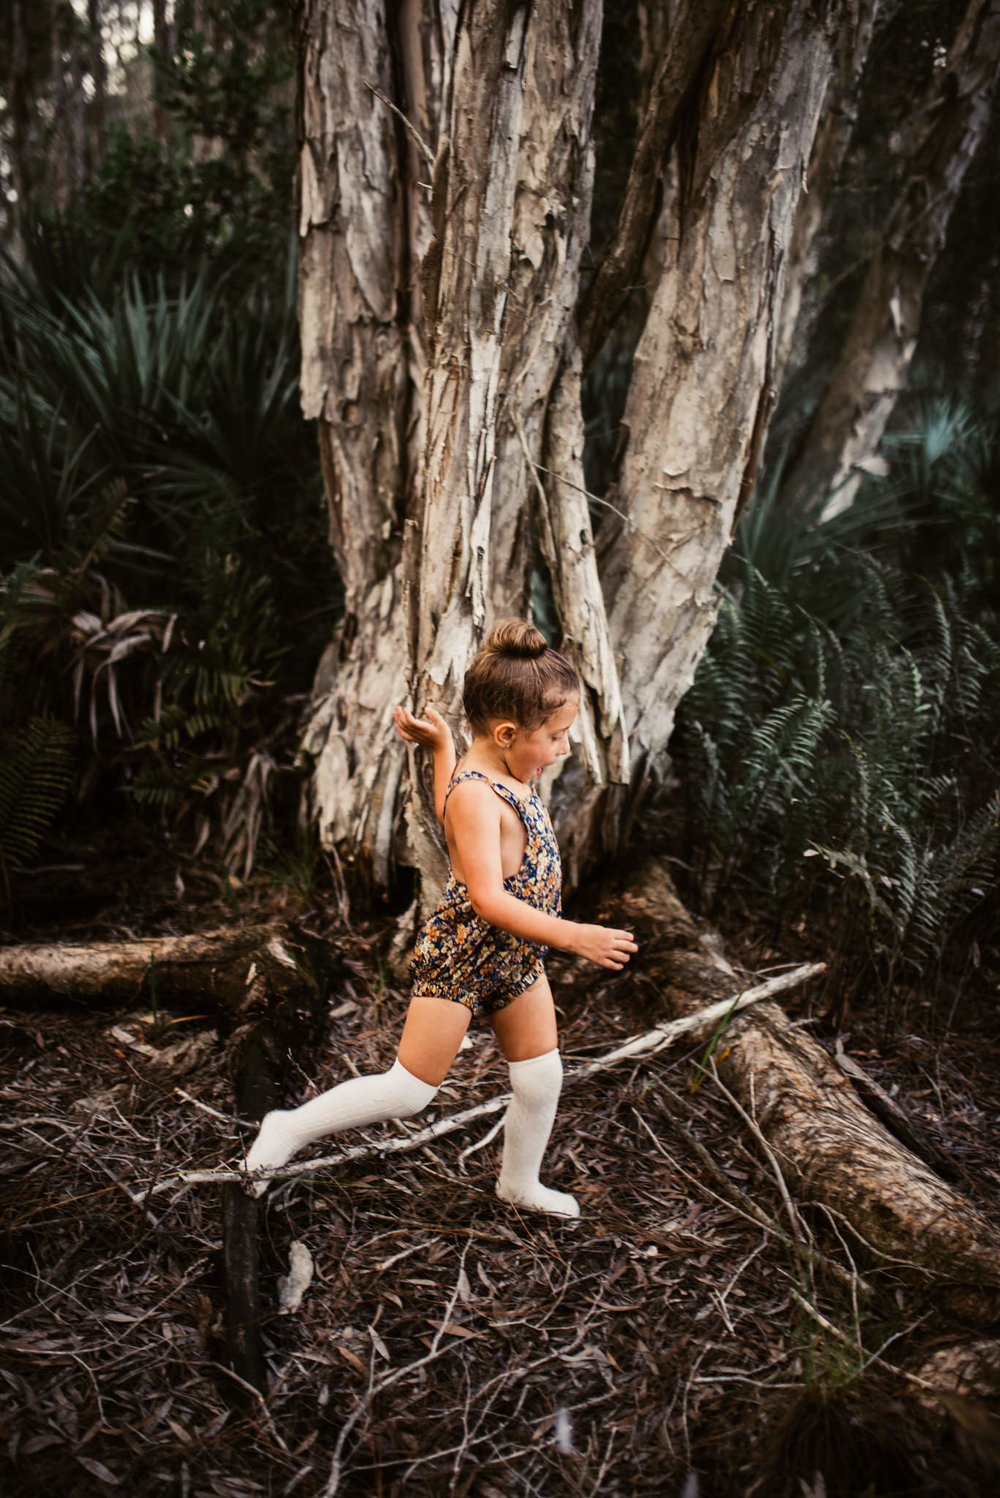 twyla jones photography - treasure coast florida - childrens adventure clothing commercial shoot--40.jpg